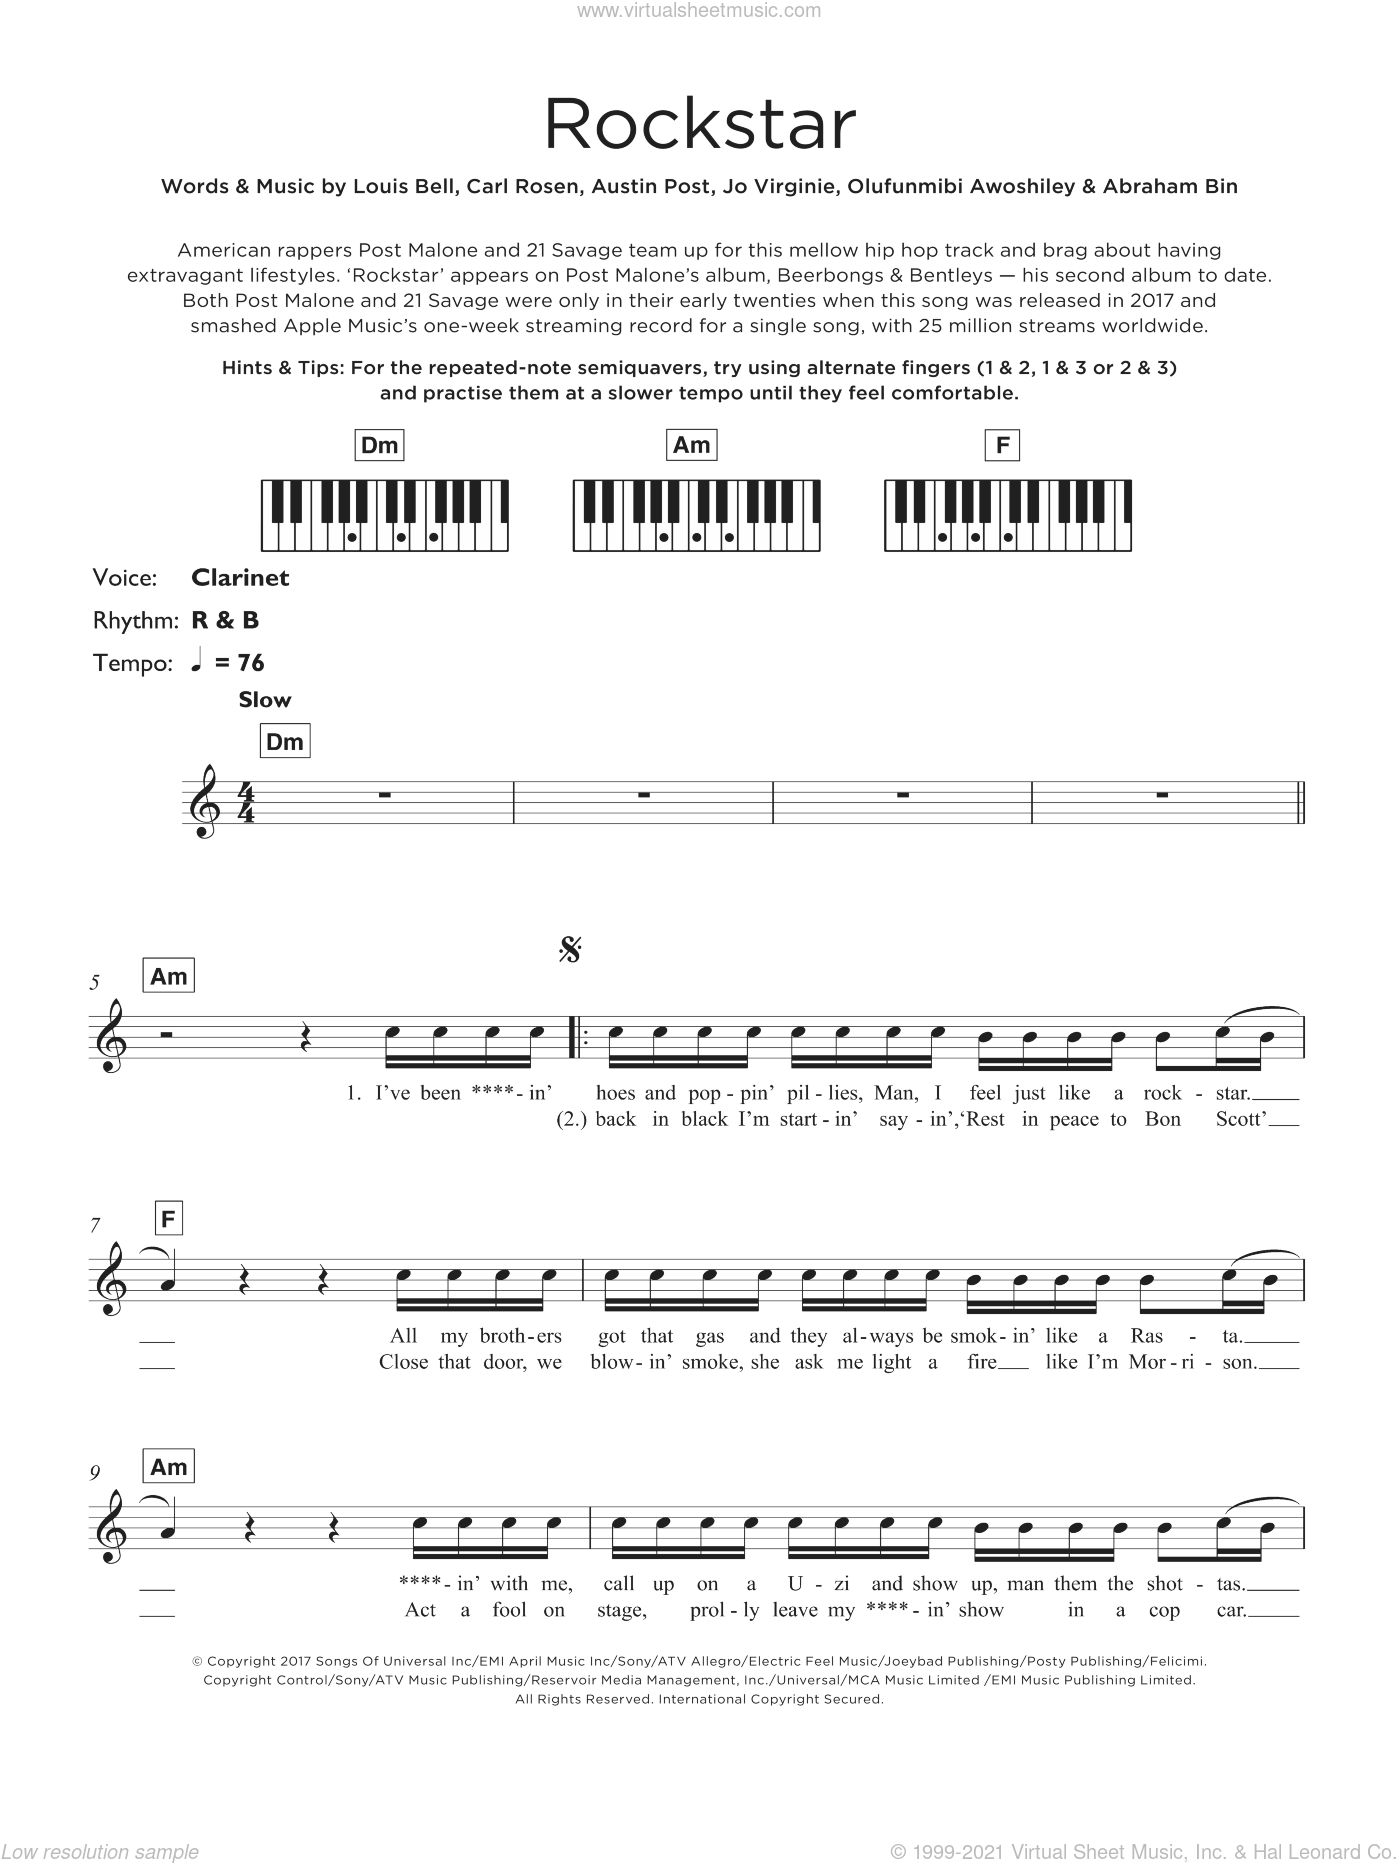 Rockstar (featuring 21 Savage) sheet music for piano solo (keyboard) by Post Malone, 21 Savage, Abraham Bin, Austin Post, Carl Rosen, Jo Virginie, Louis Bell and Olufunmibi Awoshiley, intermediate piano (keyboard)